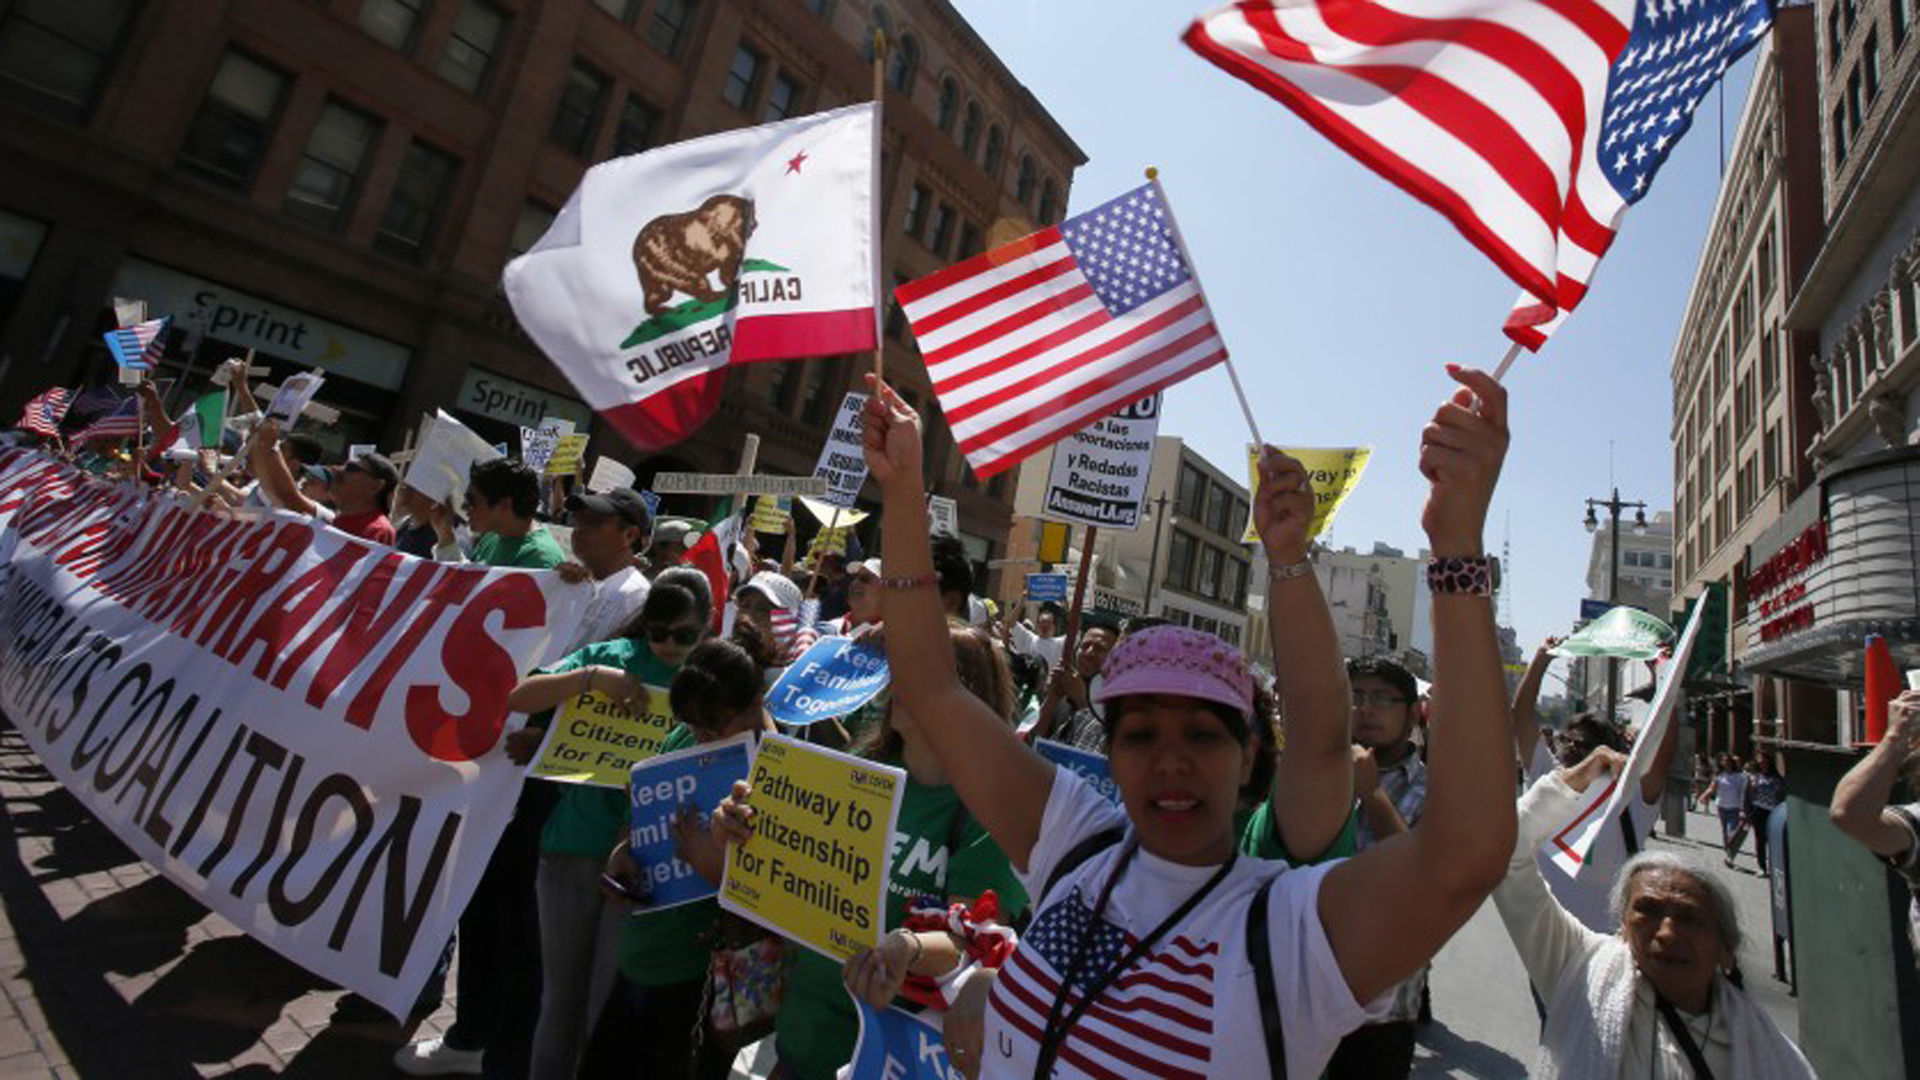 In this undated photo, demonstrators march in downtown Los Angeles in support of comprehensive immigration reform.(Credit: Irfan Khan / Los Angeles Times)